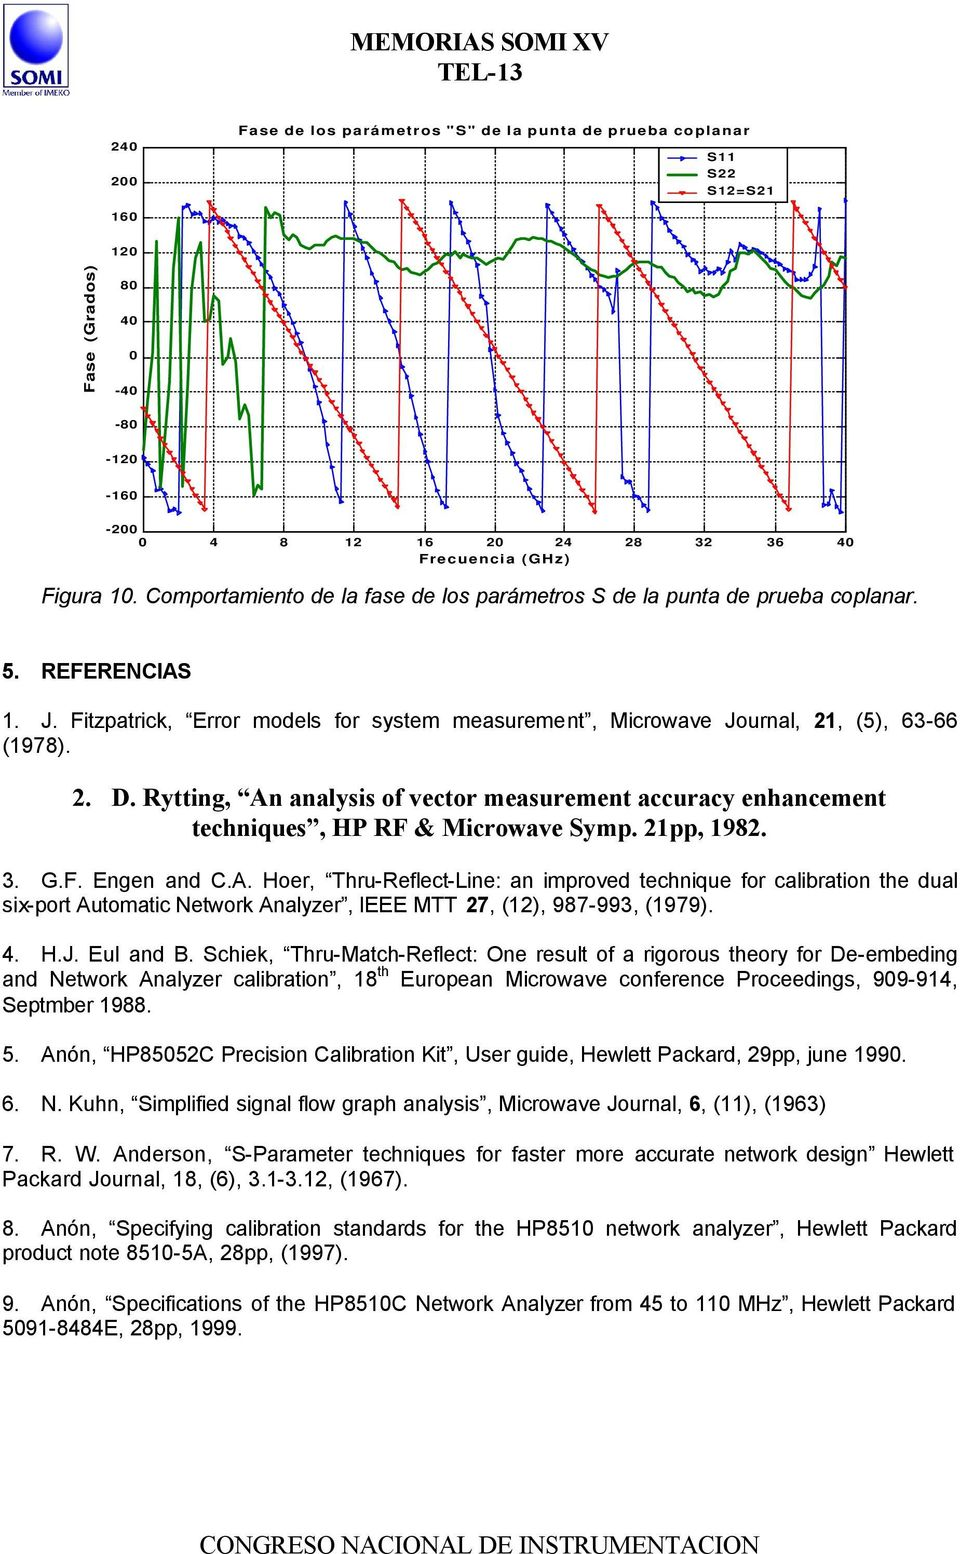 Rytting, An analysis of vector measurement accuracy enhancement techniques, HP RF & Microwave Symp. 21pp, 1982. 3. G.F. Engen and C.A. Hoer, Thru-Reflect-Line: an improved technique for calibration the dual six-port Automatic Network Analyzer, IEEE MTT 27, (12), 987-993, (1979).